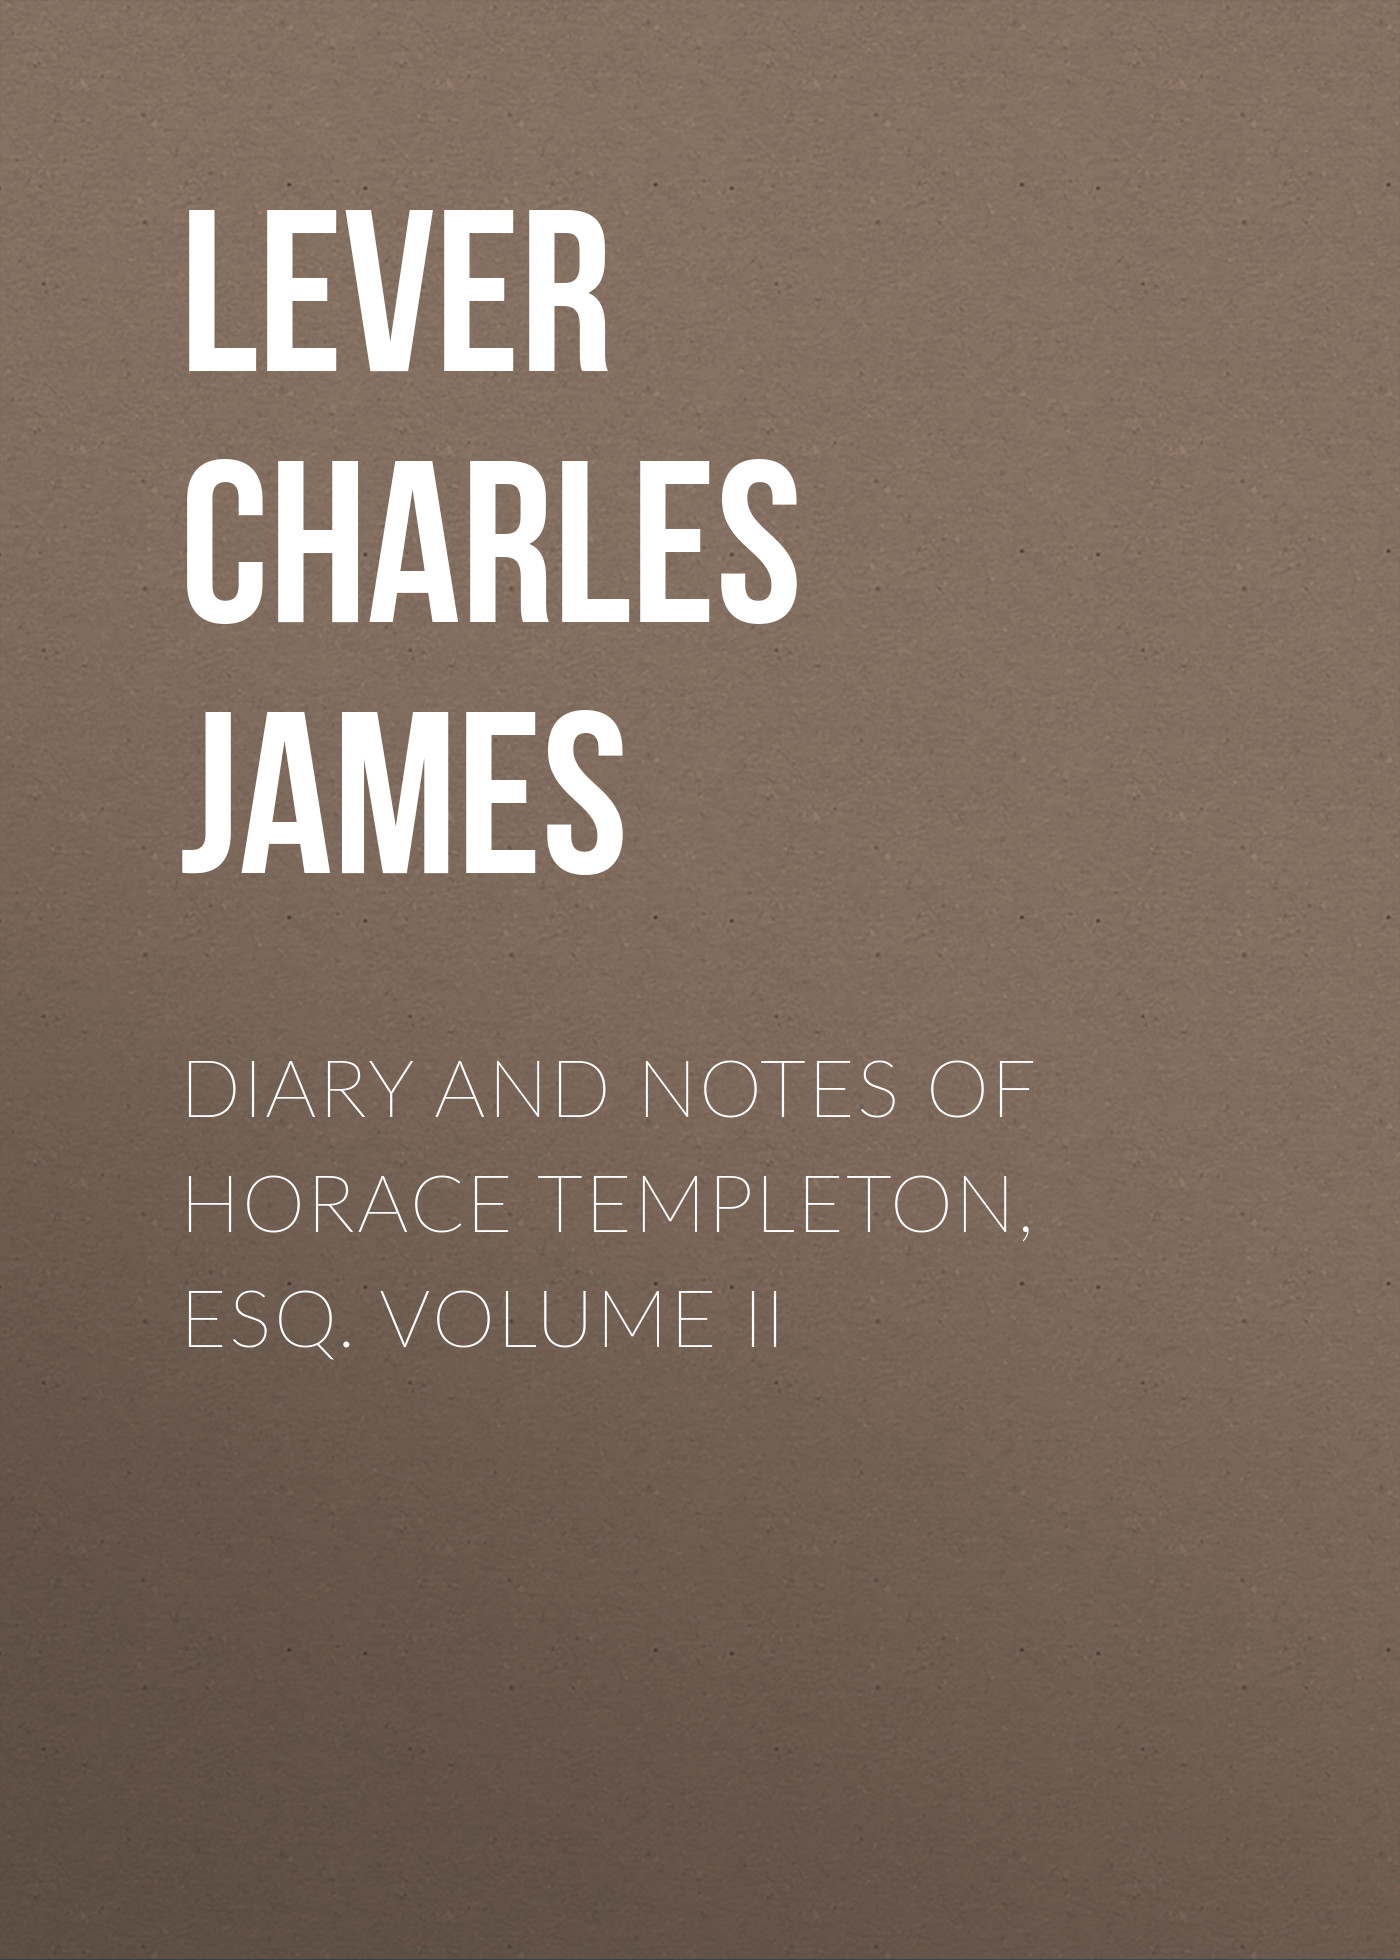 Lever Charles James Diary And Notes Of Horace Templeton, Esq. Volume II lever charles james nuts and nutcrackers